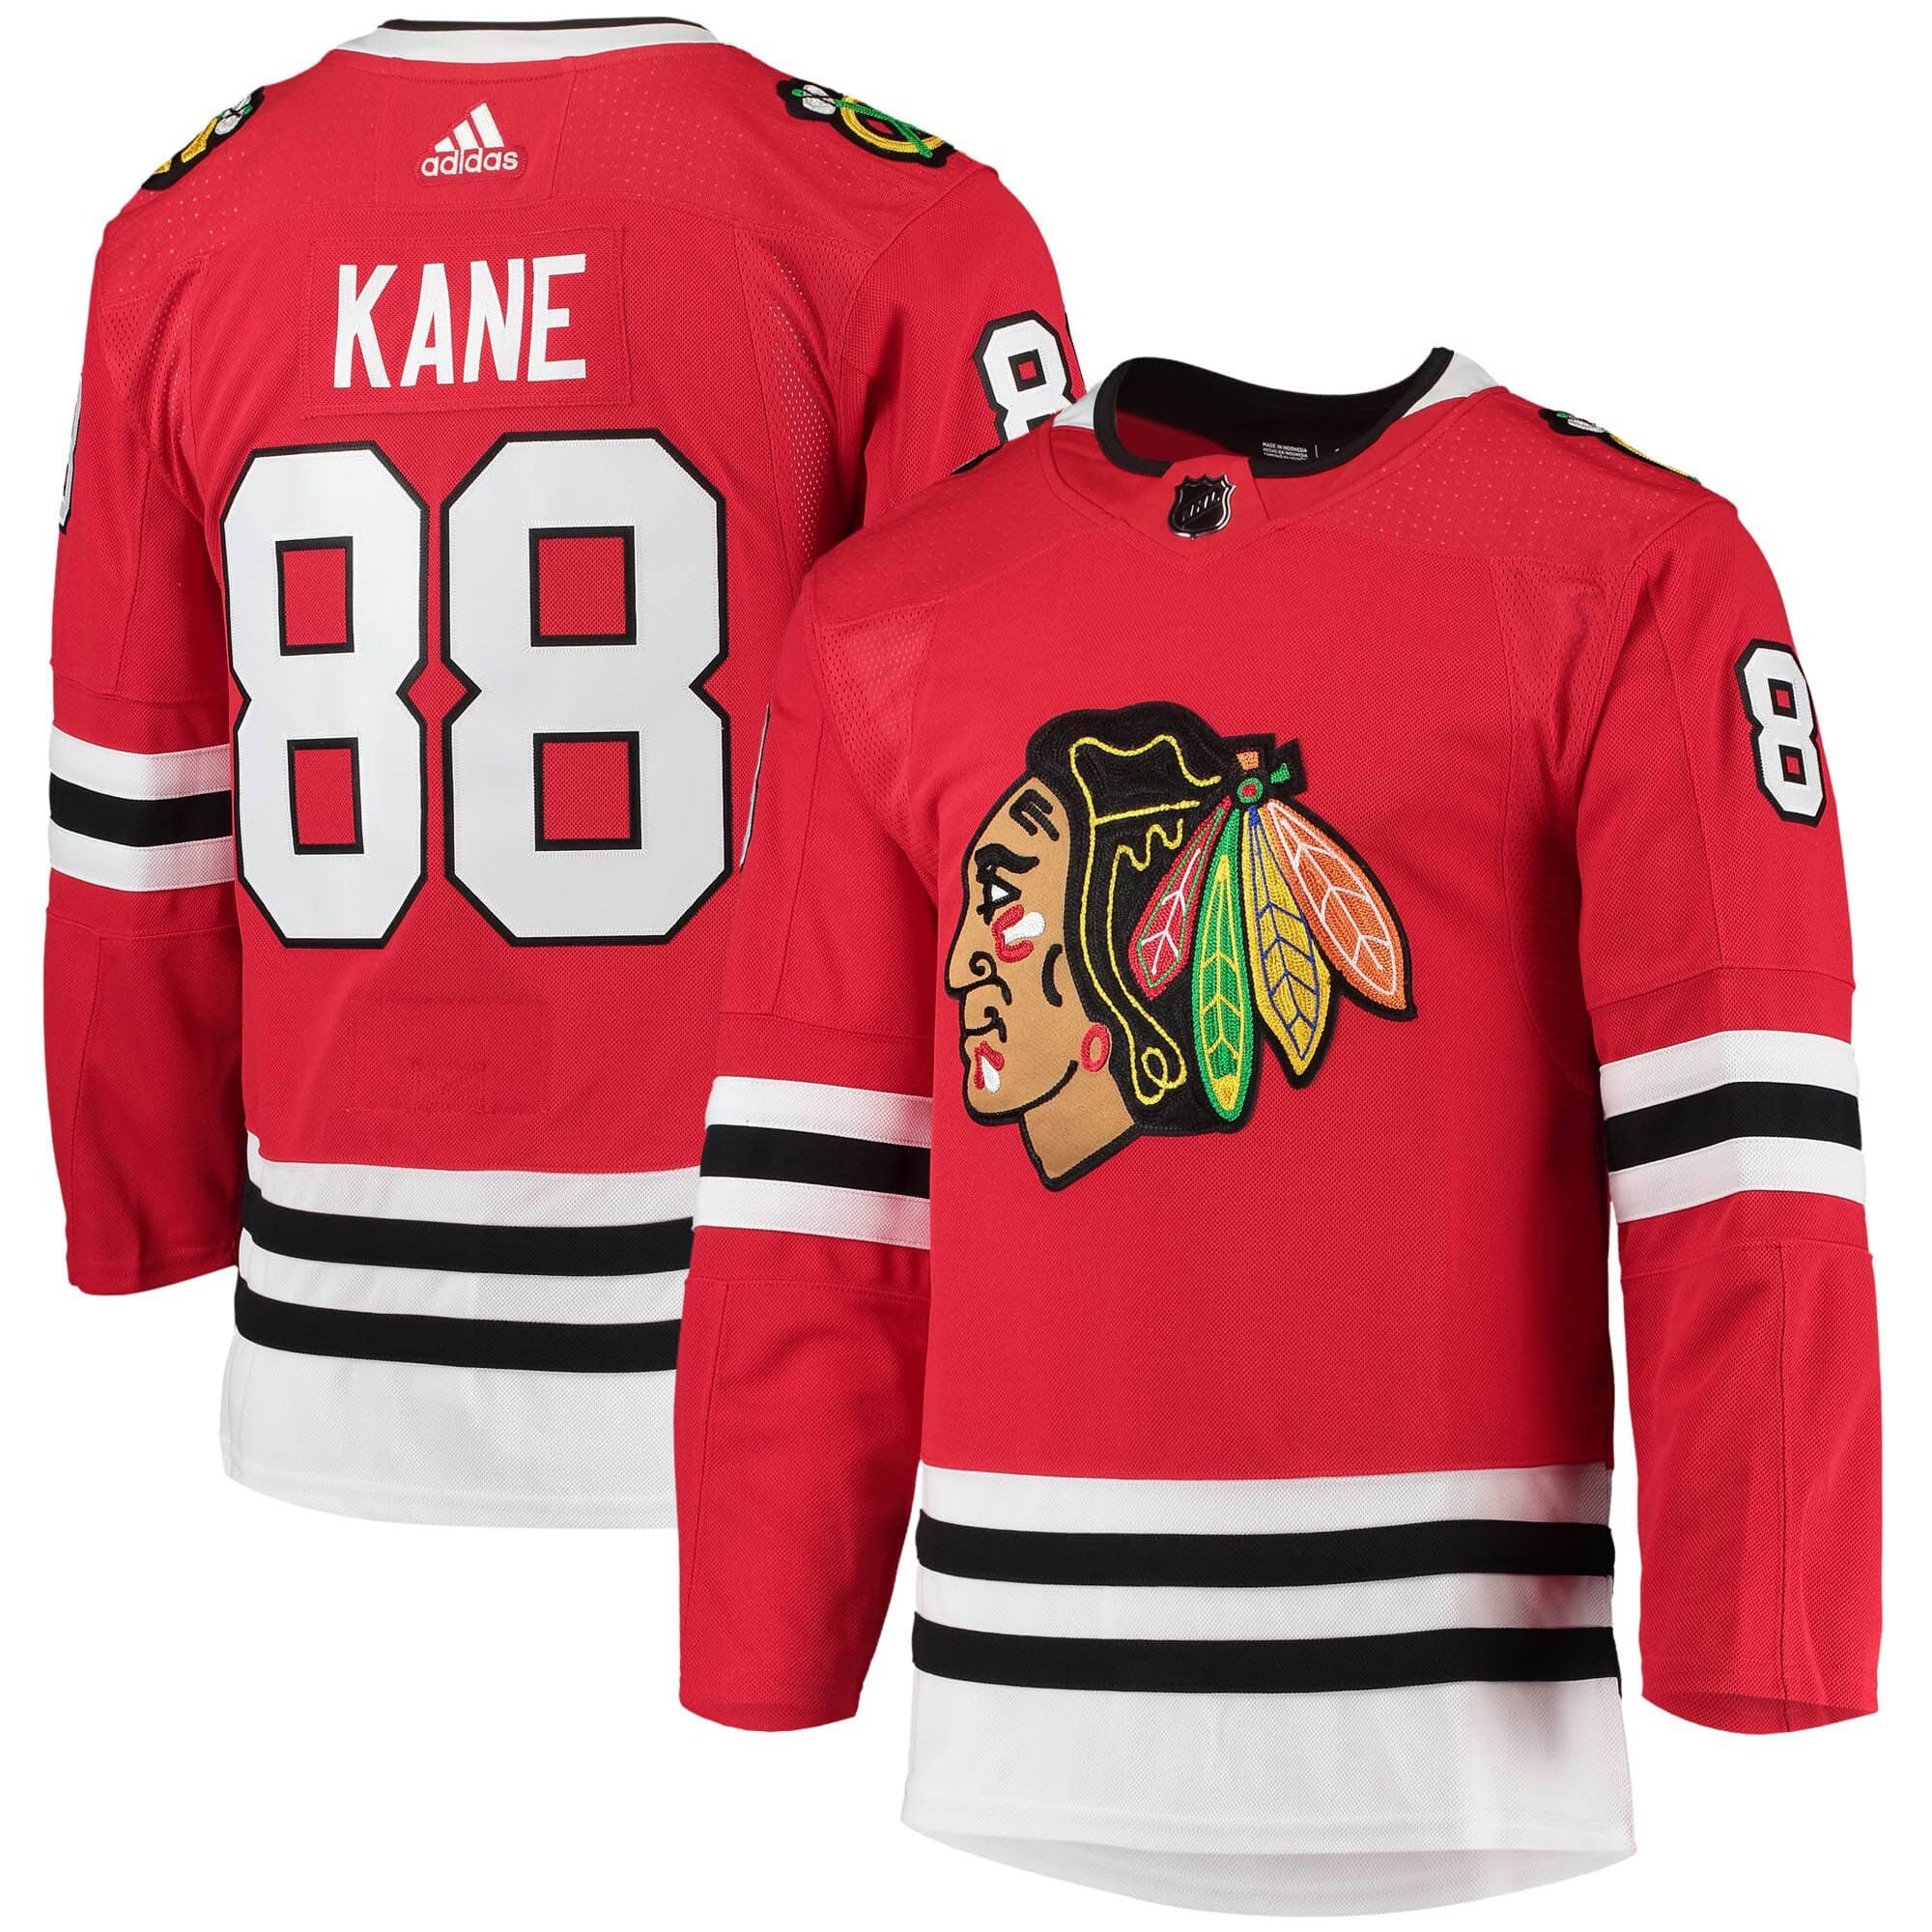 adidas Patrick Kane  88 Chicago Blackhawks Authentic Pro NHL Jersey Home  00034502e